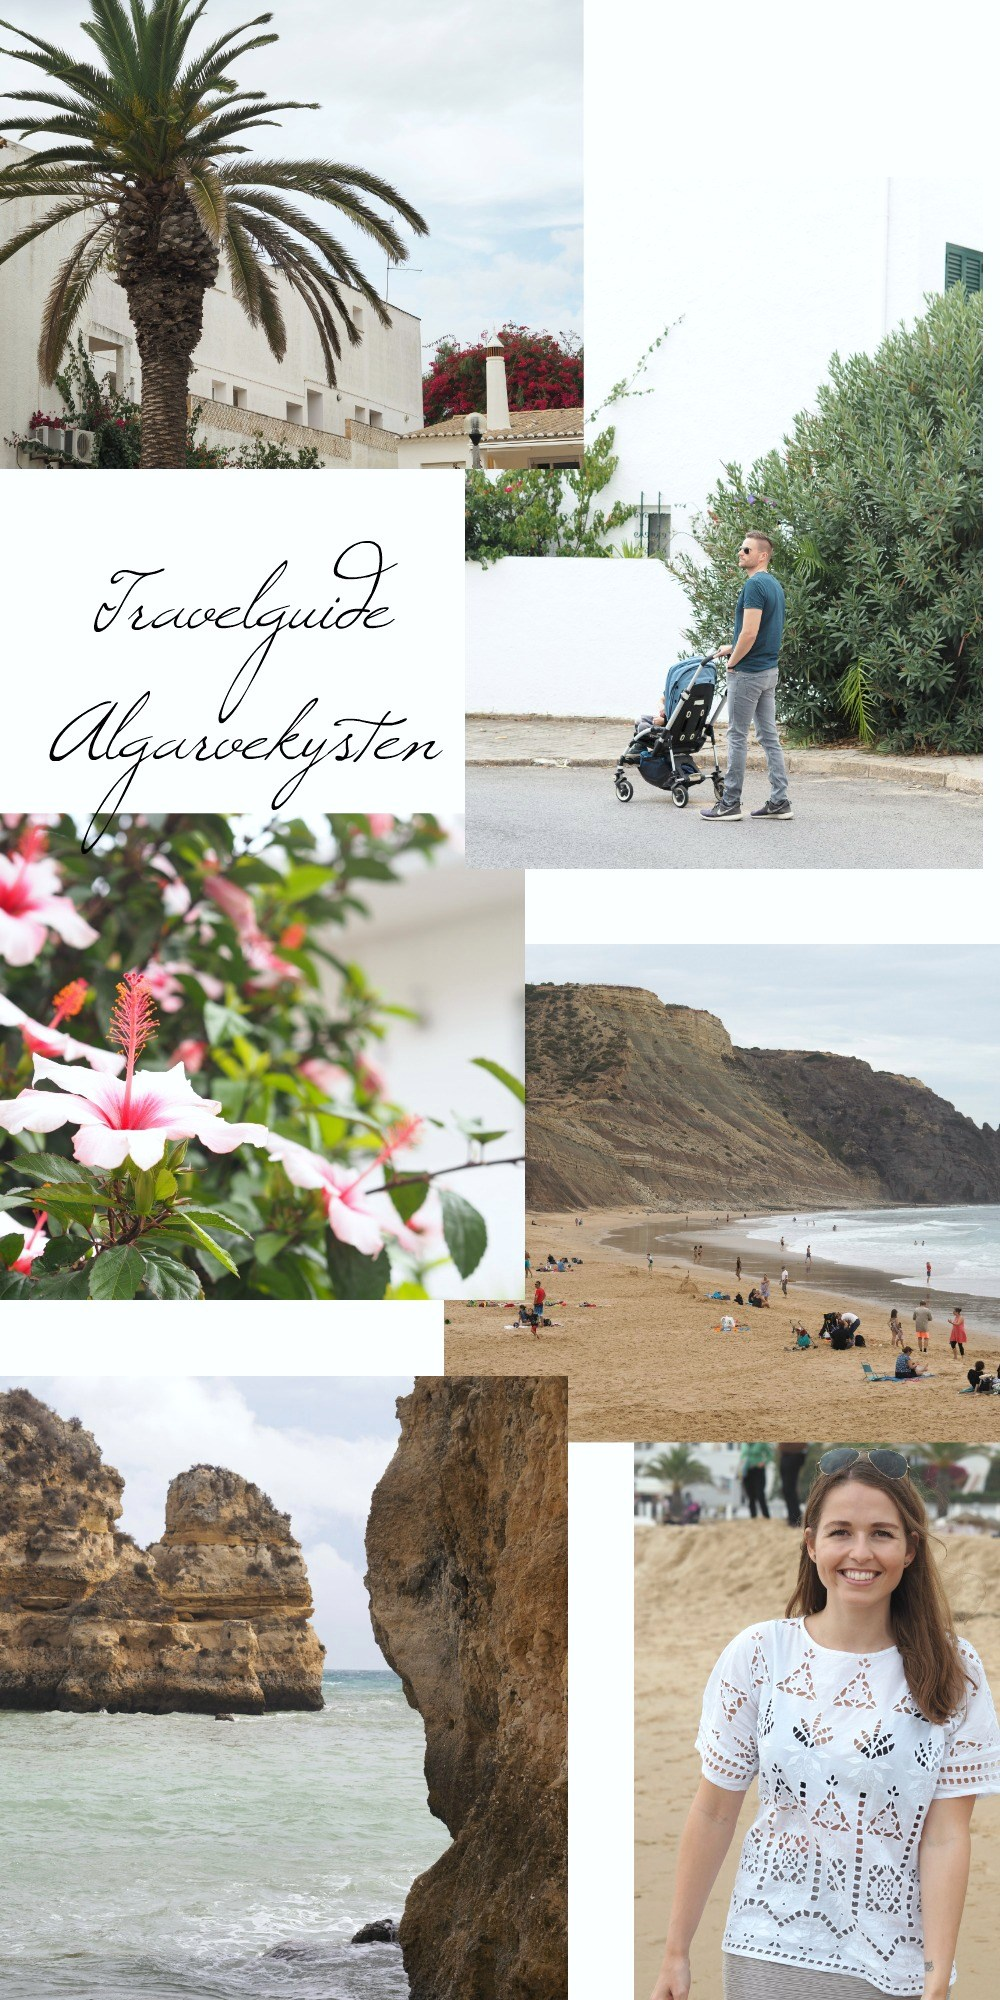 Algarvekysten guide